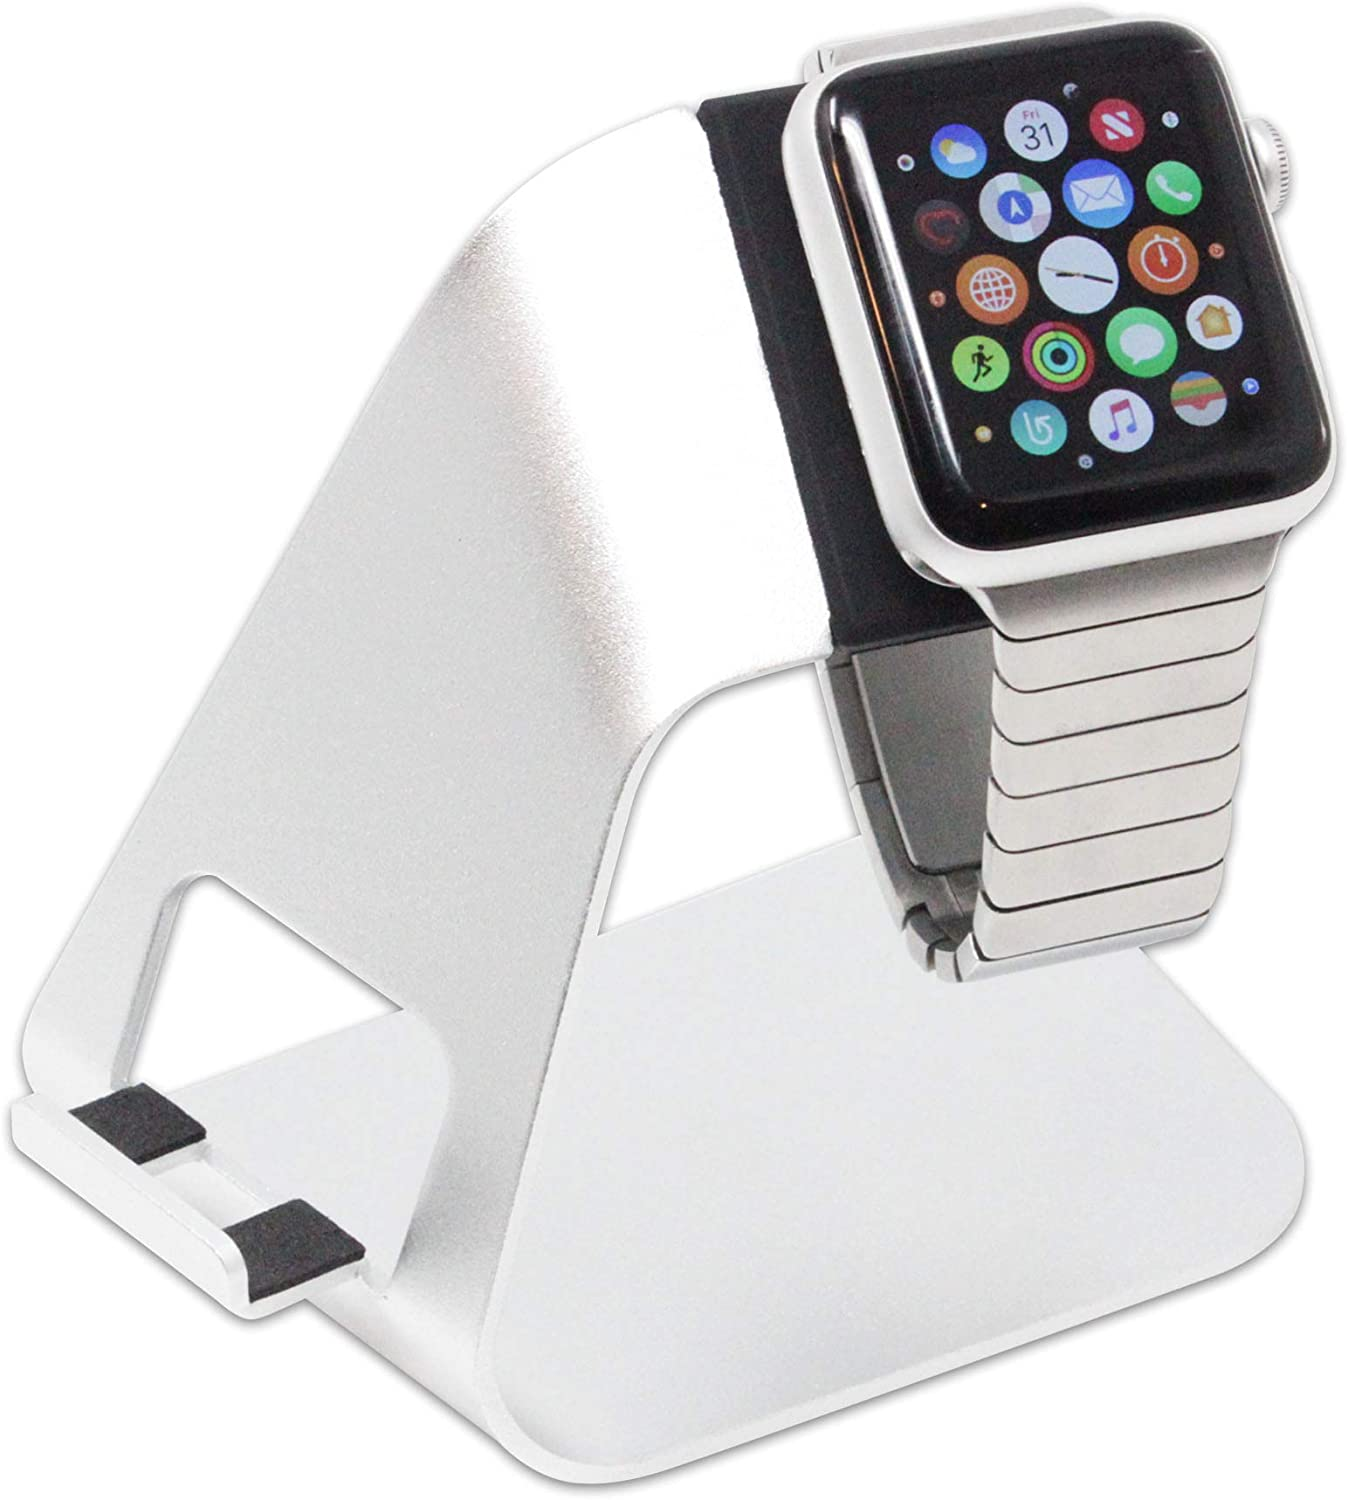 Hercules Tuff Onyx Designed for Apple Watch Stand with Night Stand Mode for Series 4 / Series 3 / Series 2 / Series 1 / 44mm / 42mm / 40mm / 38mm